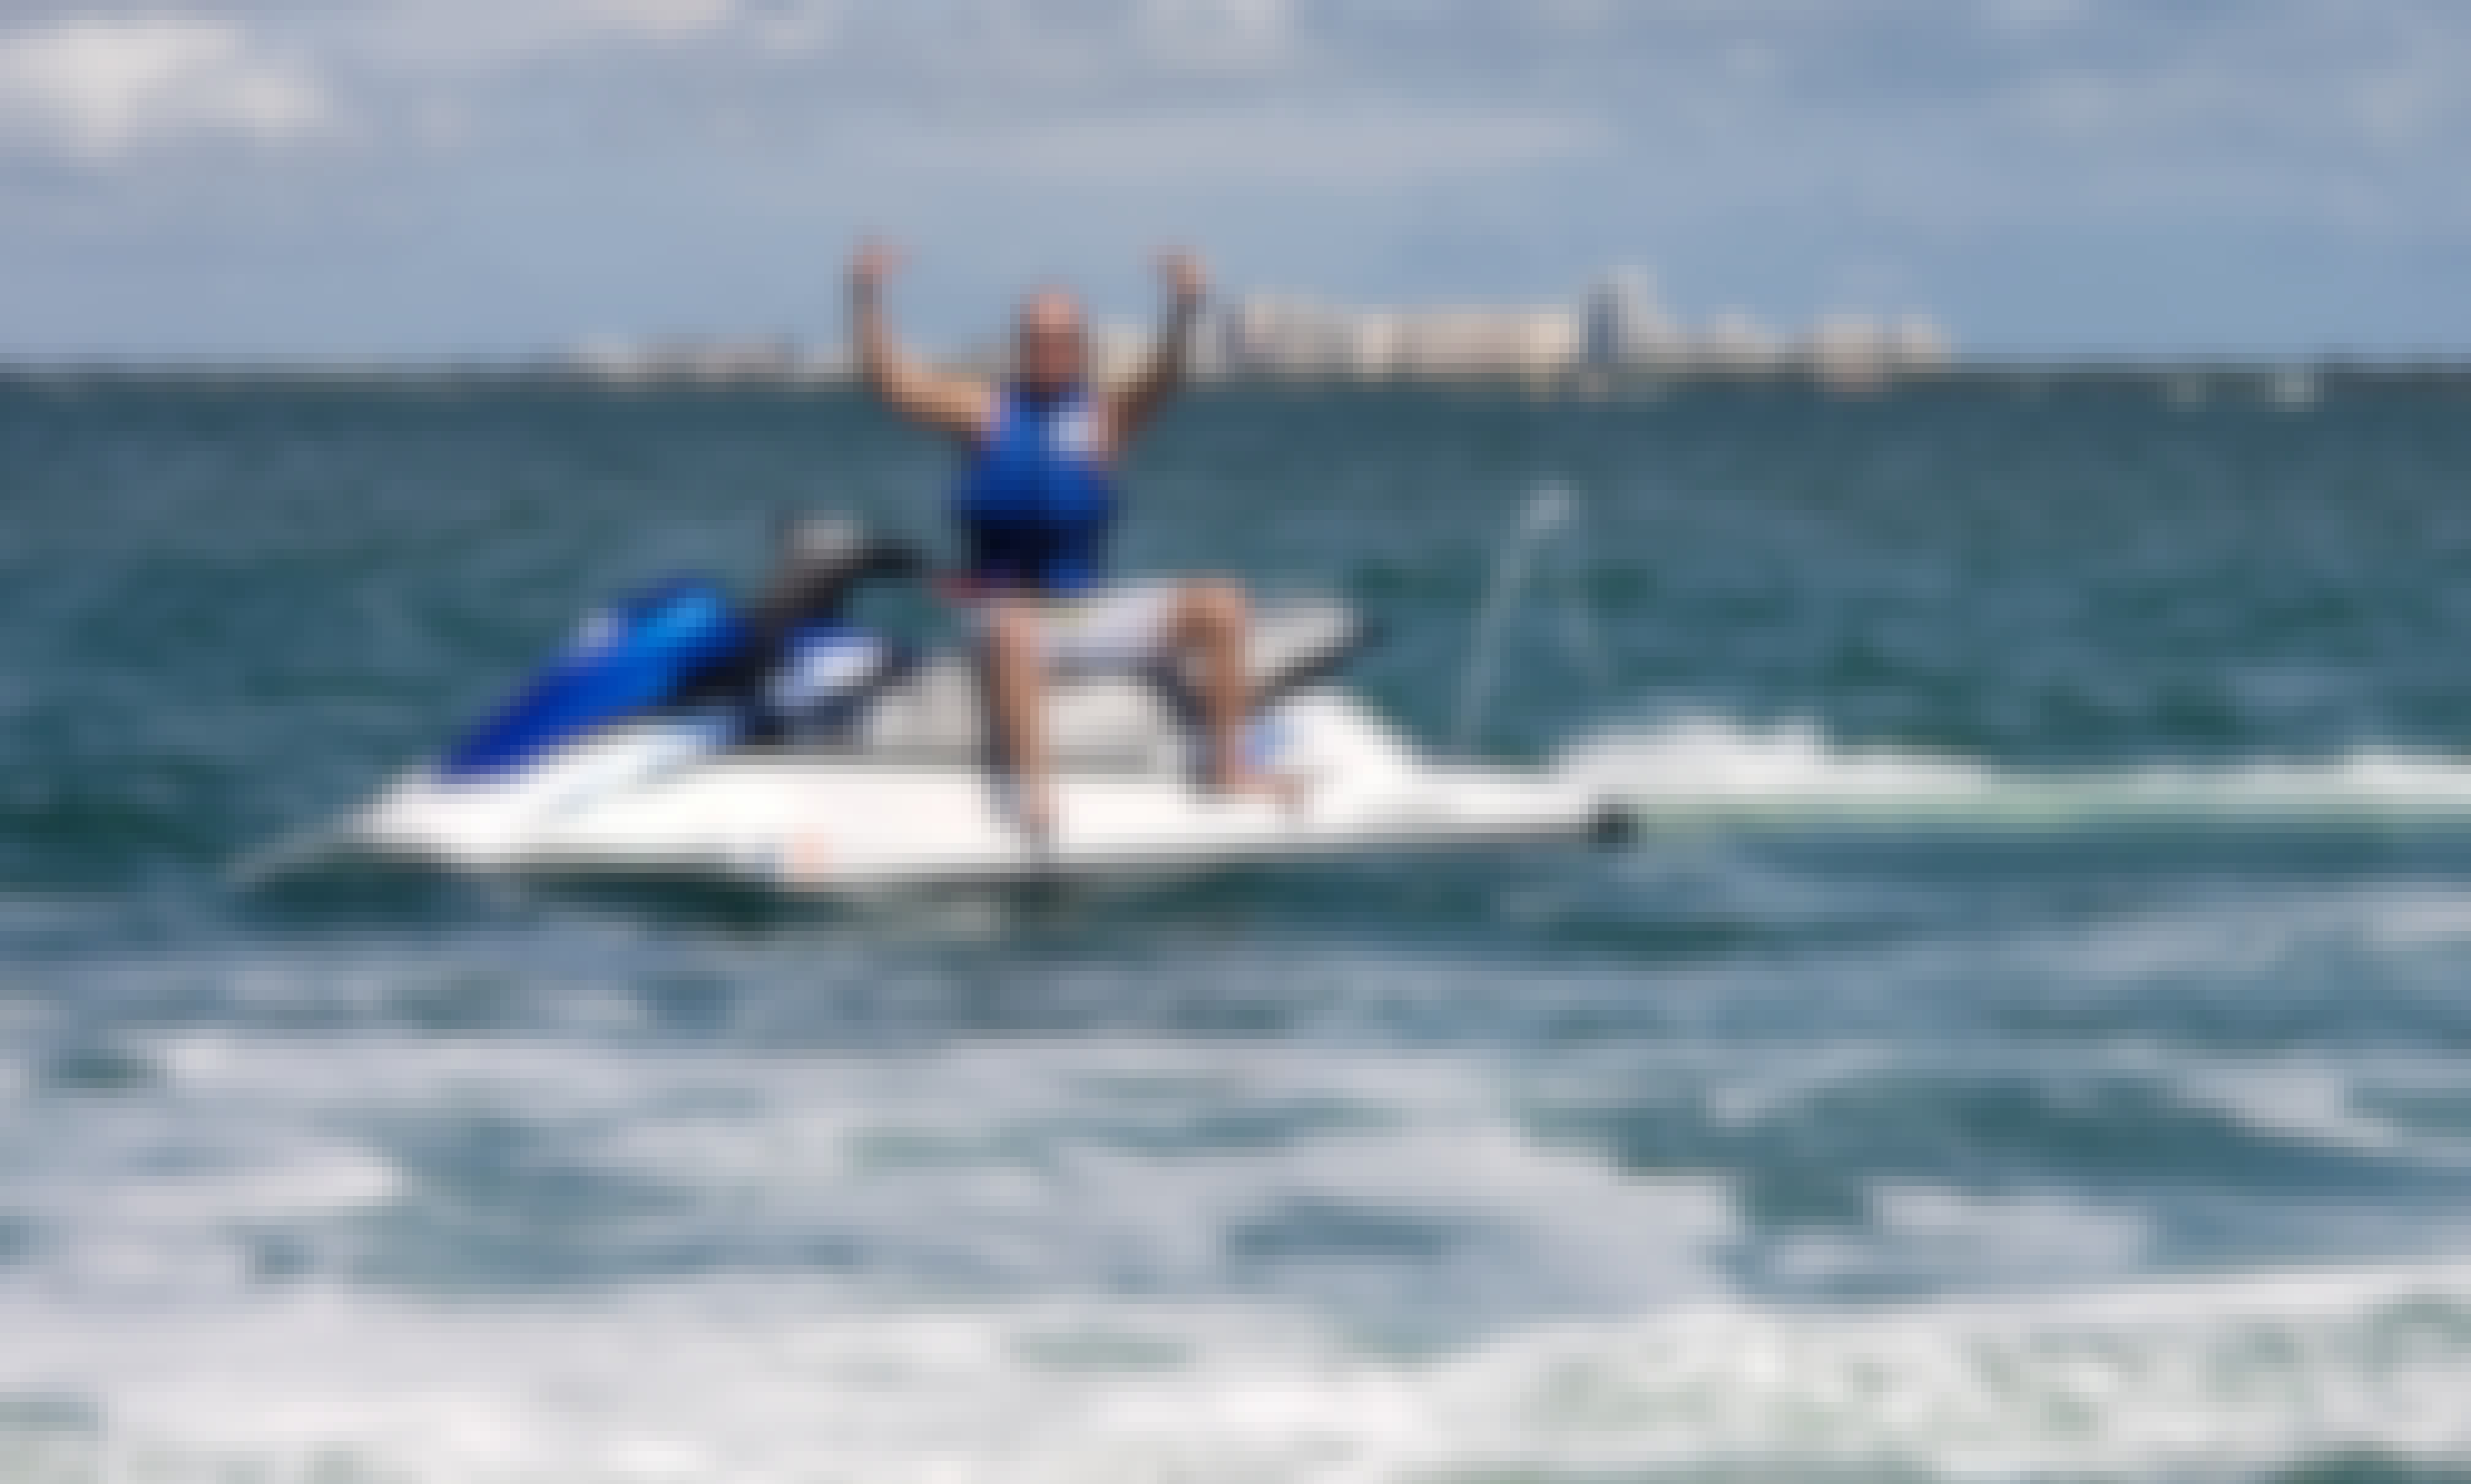 3 Powerful Yamaha Jet Ski's for Rent in Dade County Florida!